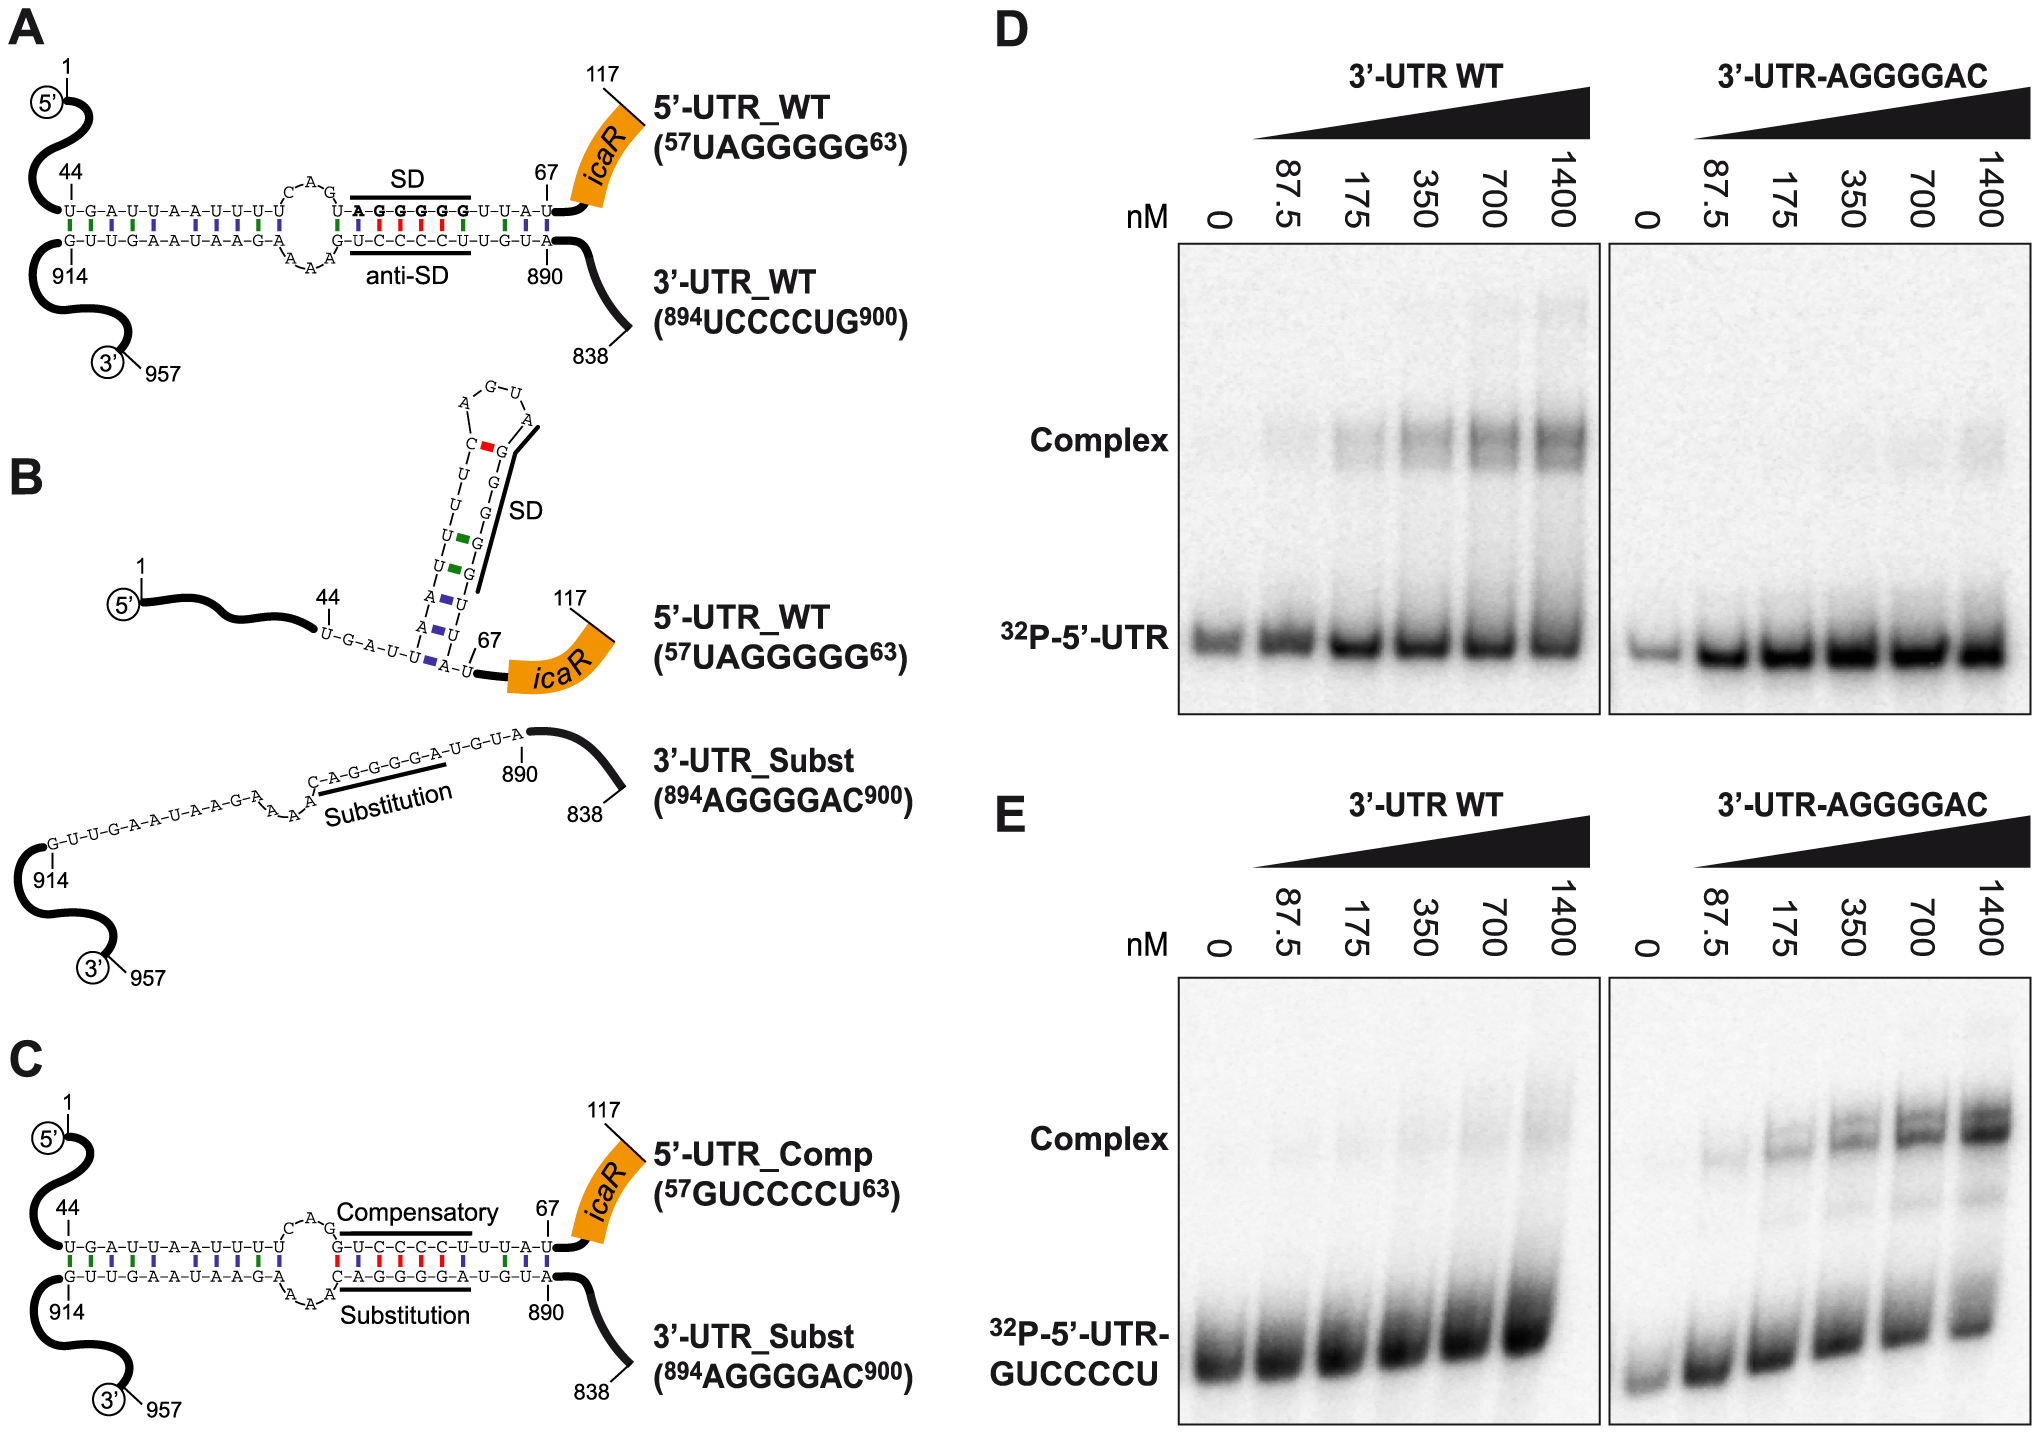 A UCCCCUG motif is necessary for the interaction between the 3′-UTR and the Shine-Dalgarno region of <i>icaR</i> mRNA <i>in vitro</i>.